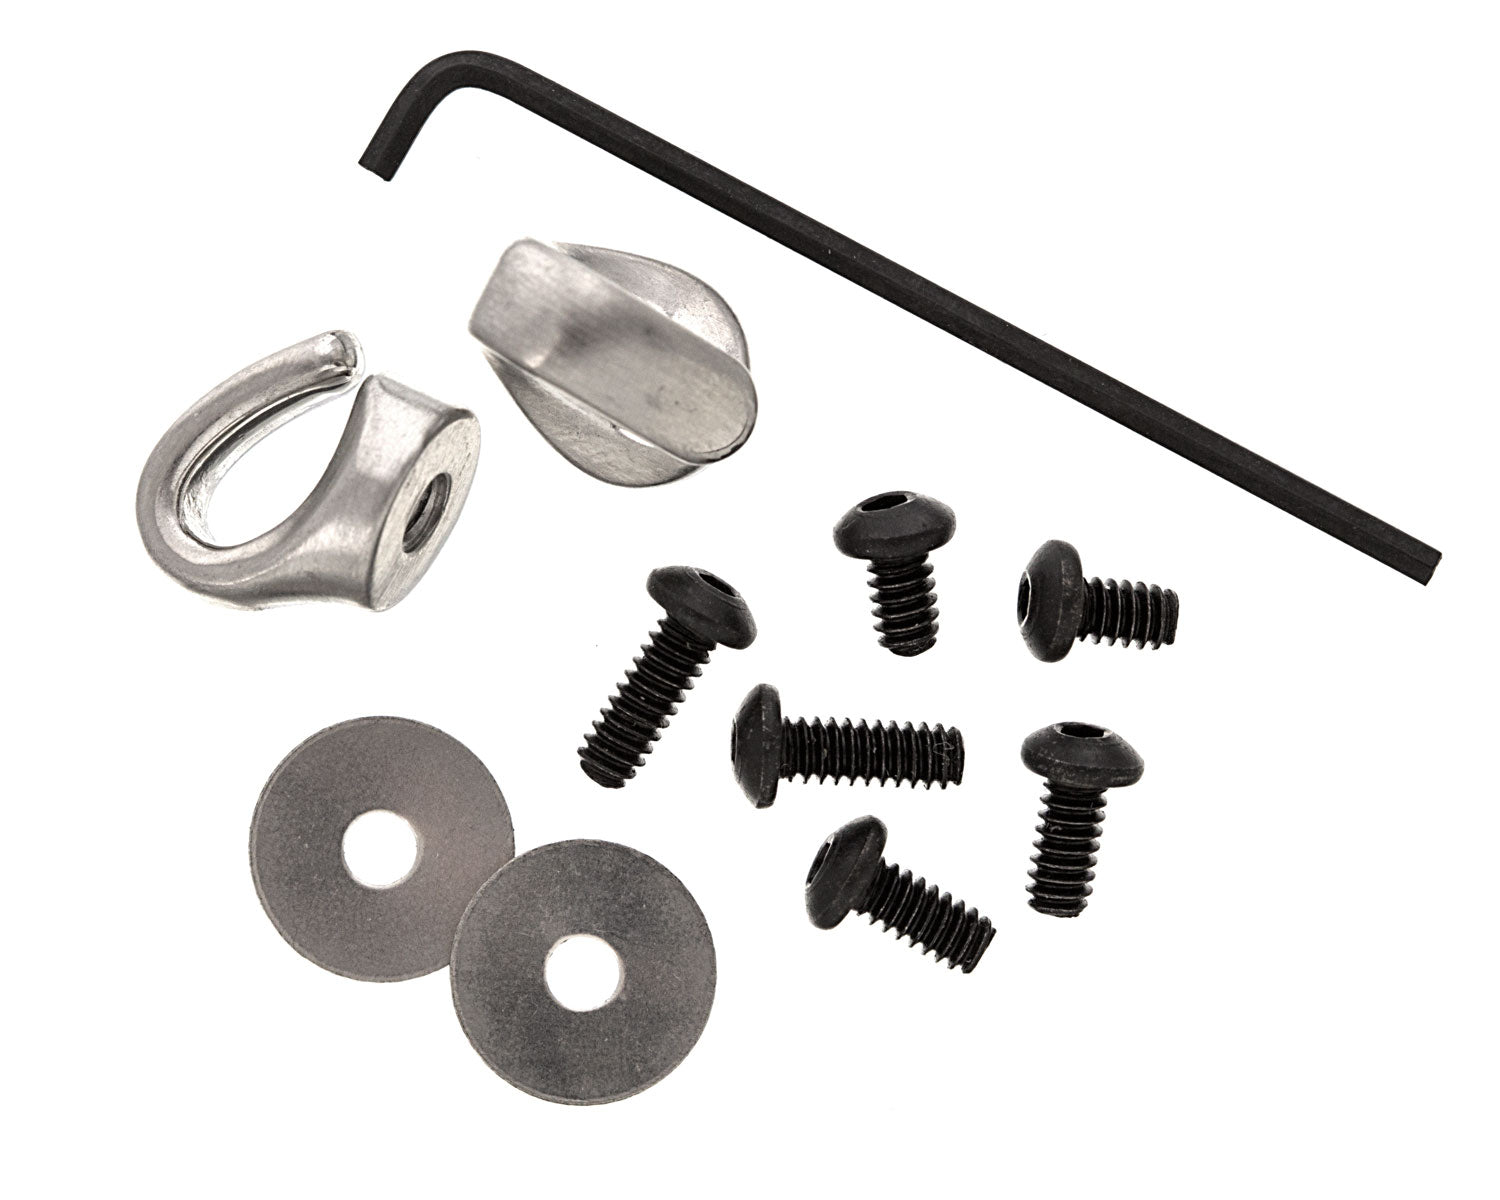 Supplemental Accessory – Anchor and Eyelet Kits